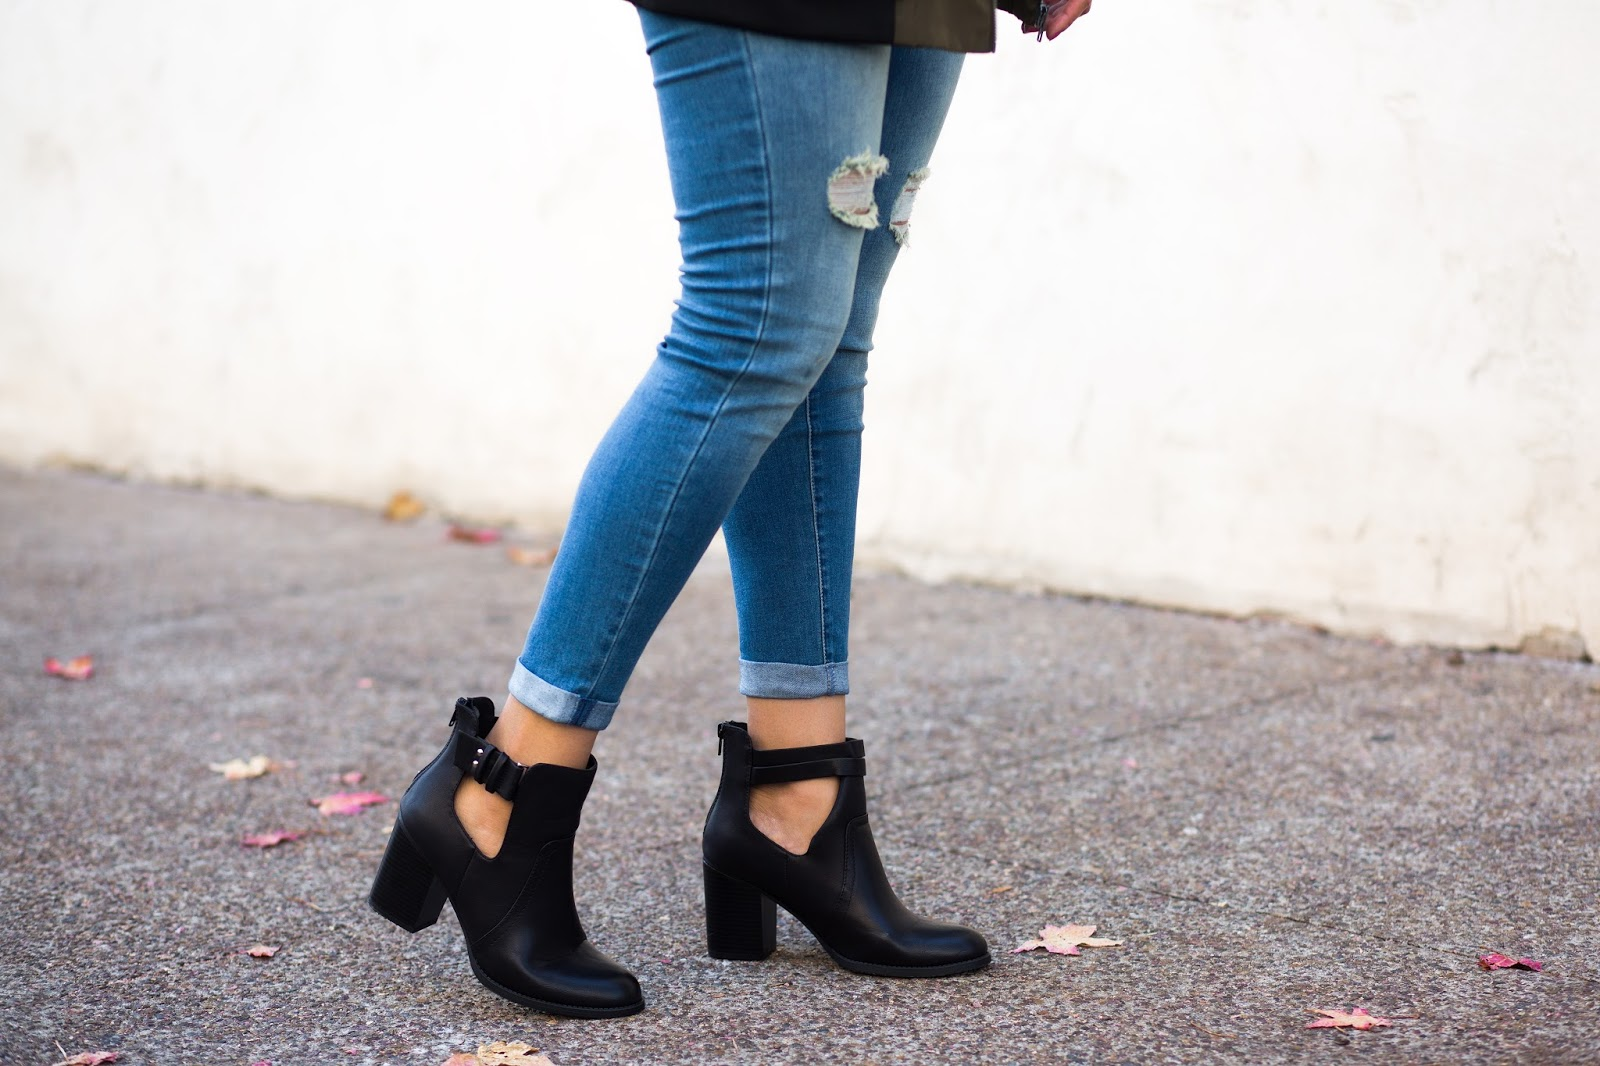 cut-out booties, affordable fall shoes, fall boots 2016, cool casual boots for fall